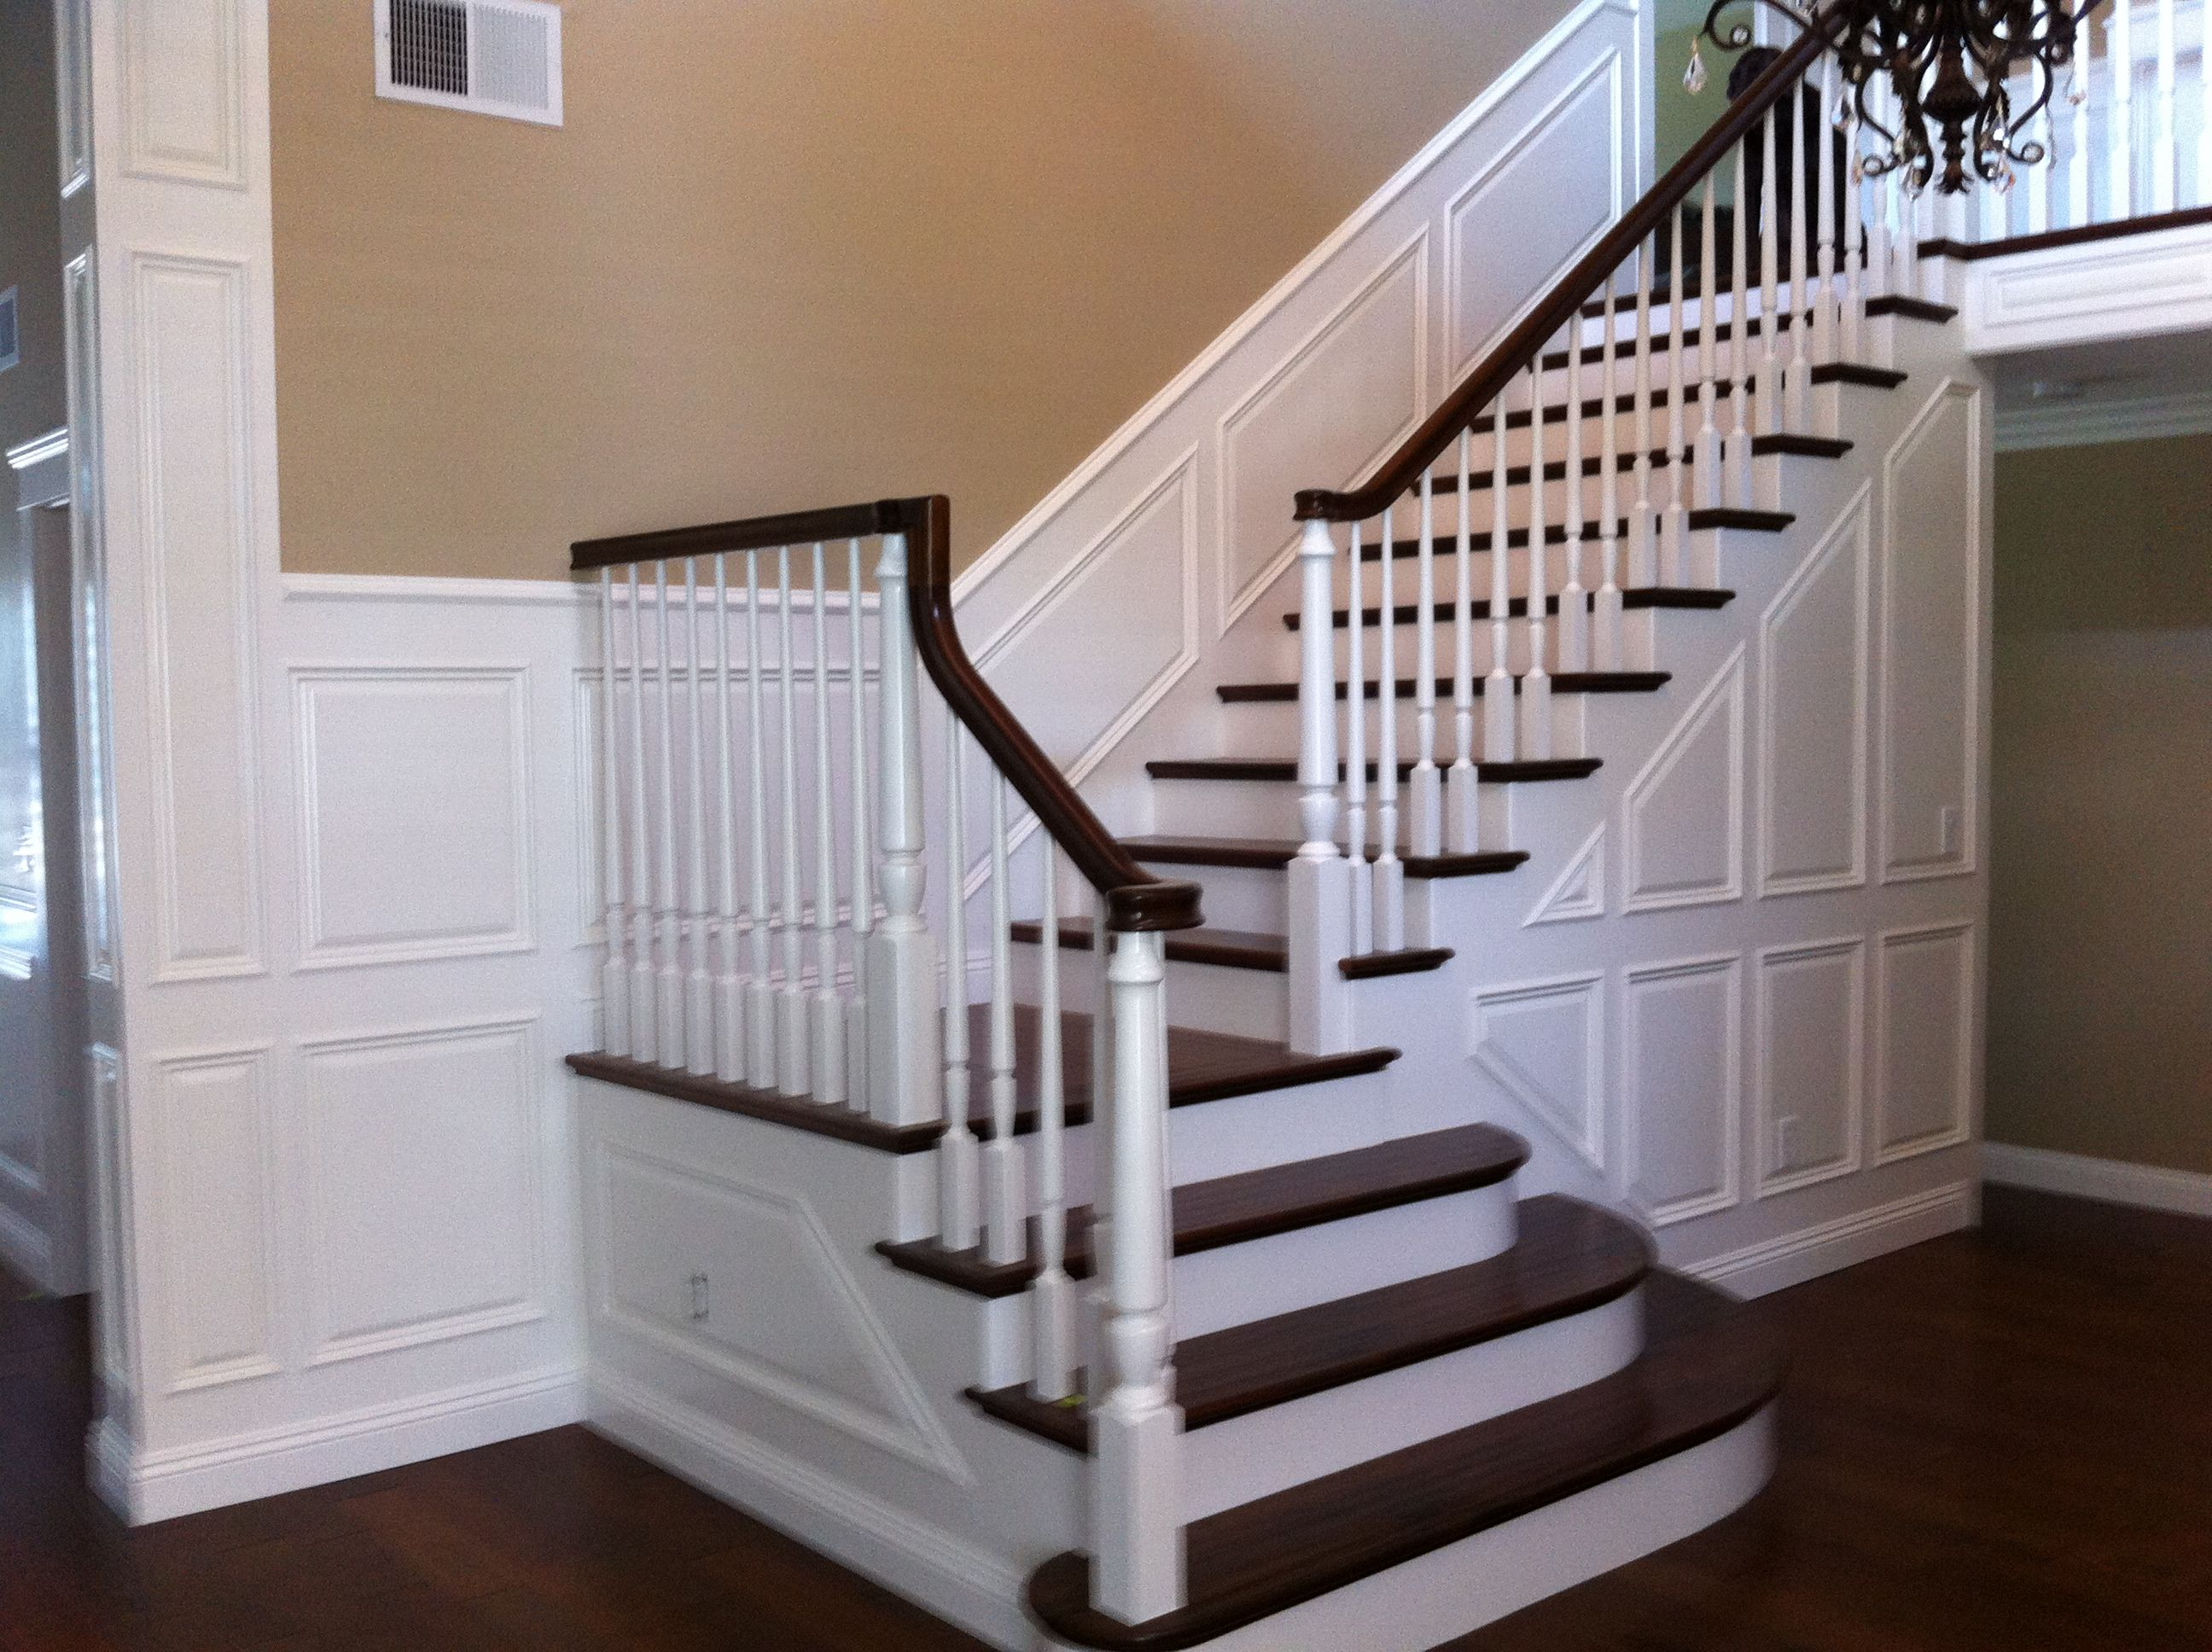 pictures of decorative trim on vaulted walls | wainscoting, base